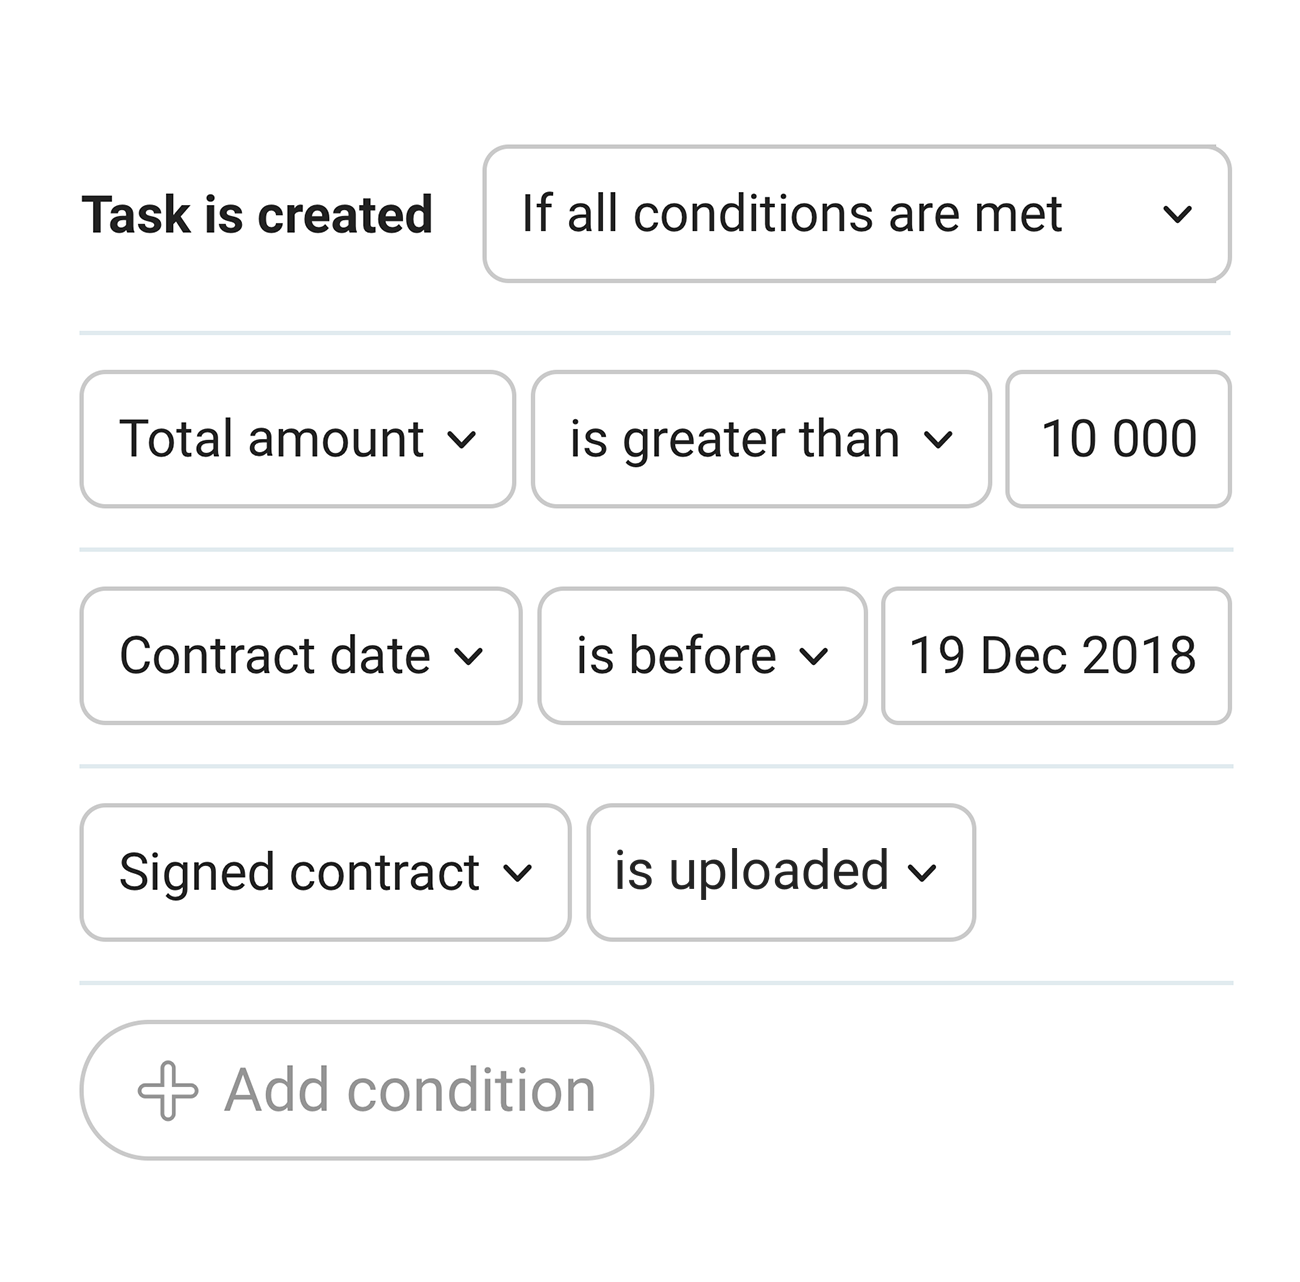 Task conditions